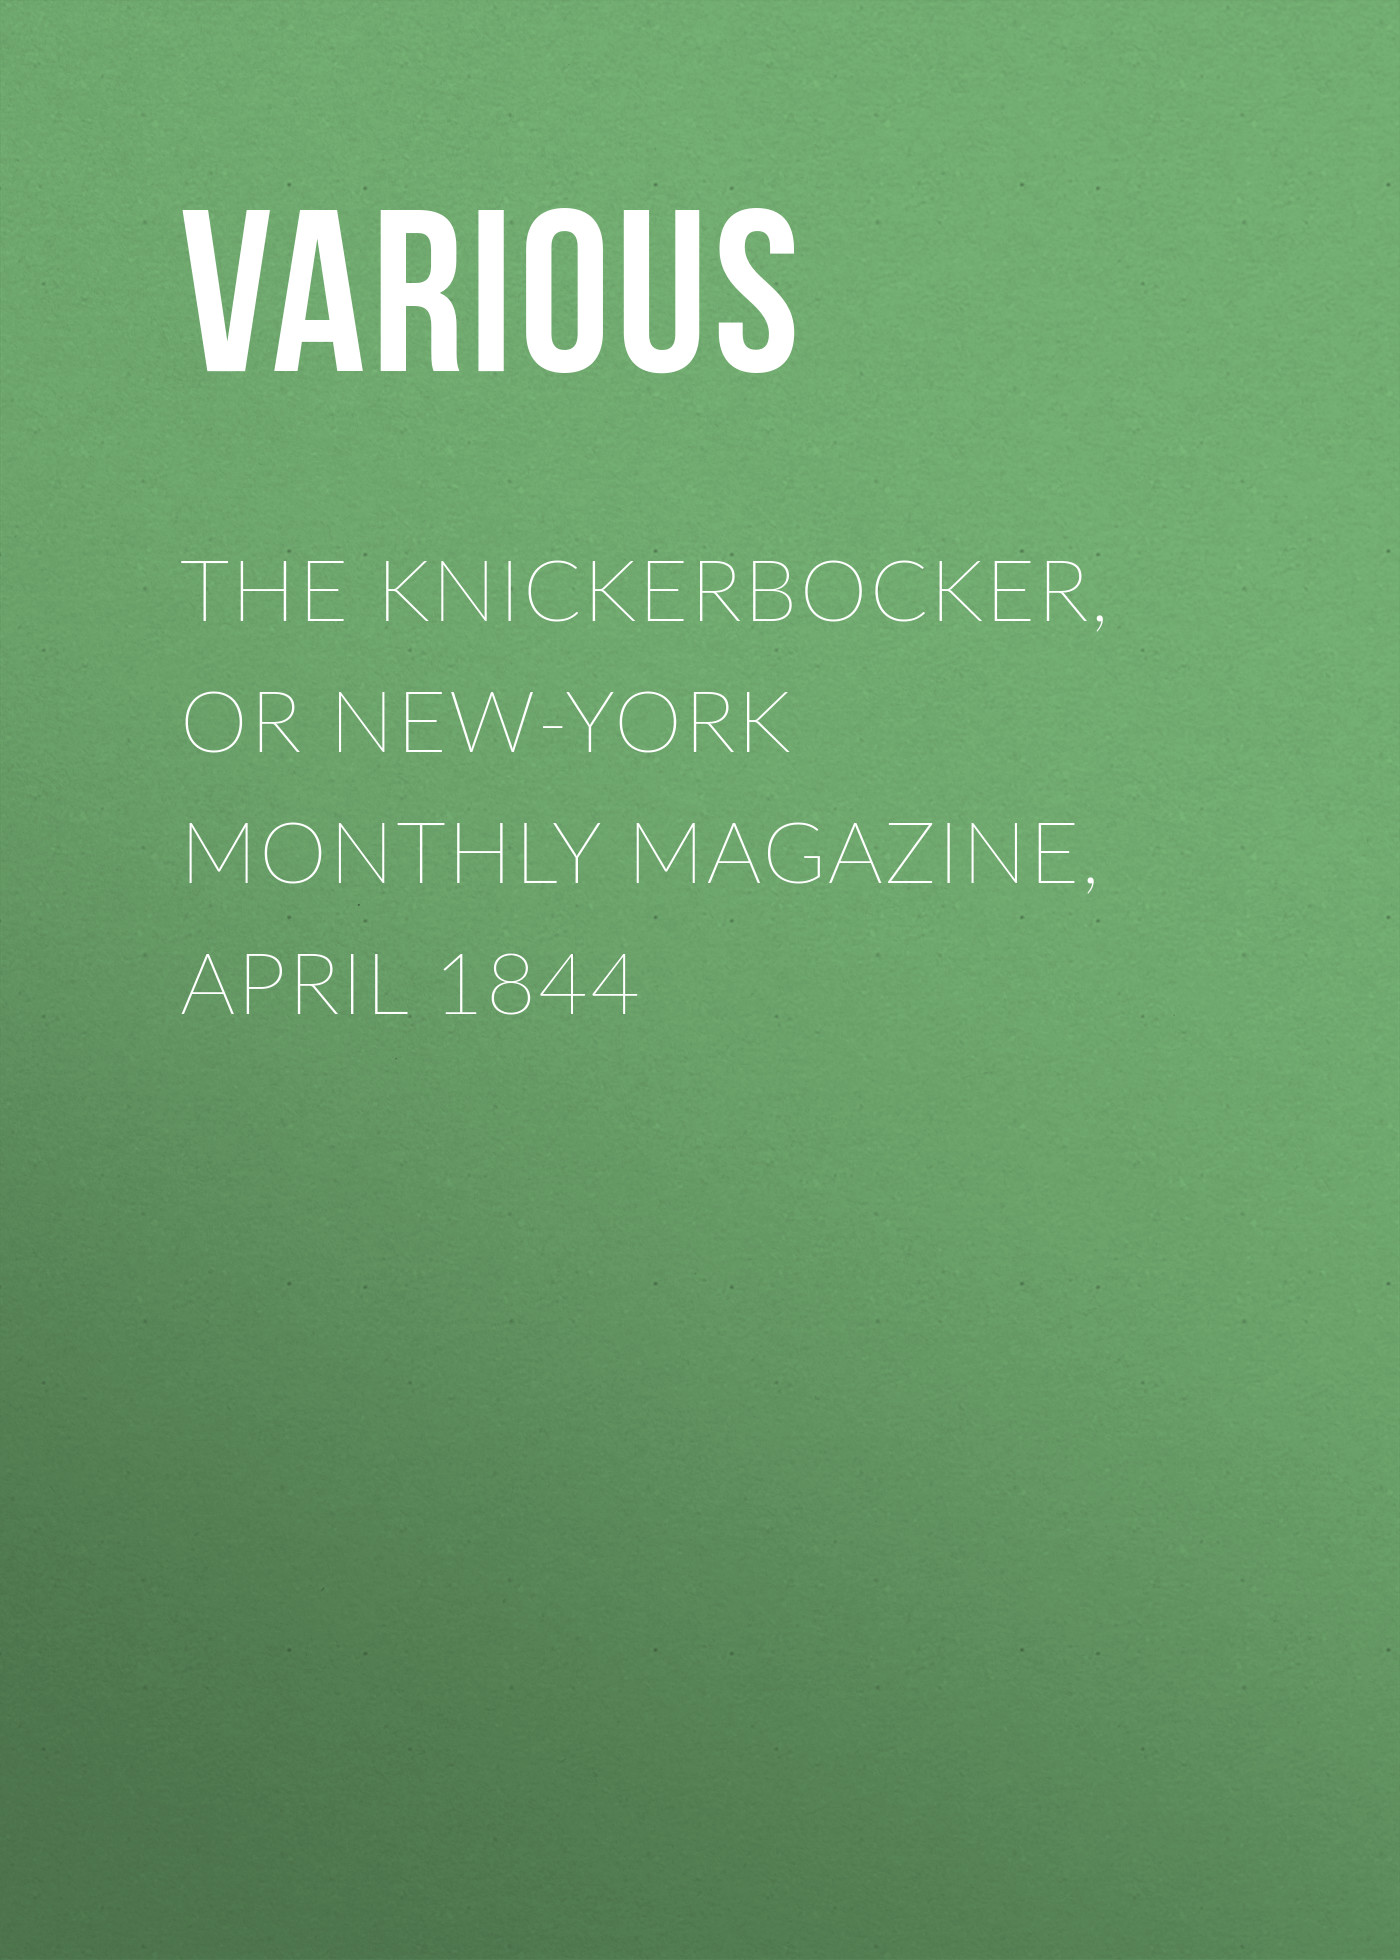 Various The Knickerbocker, or New-York Monthly Magazine, April 1844